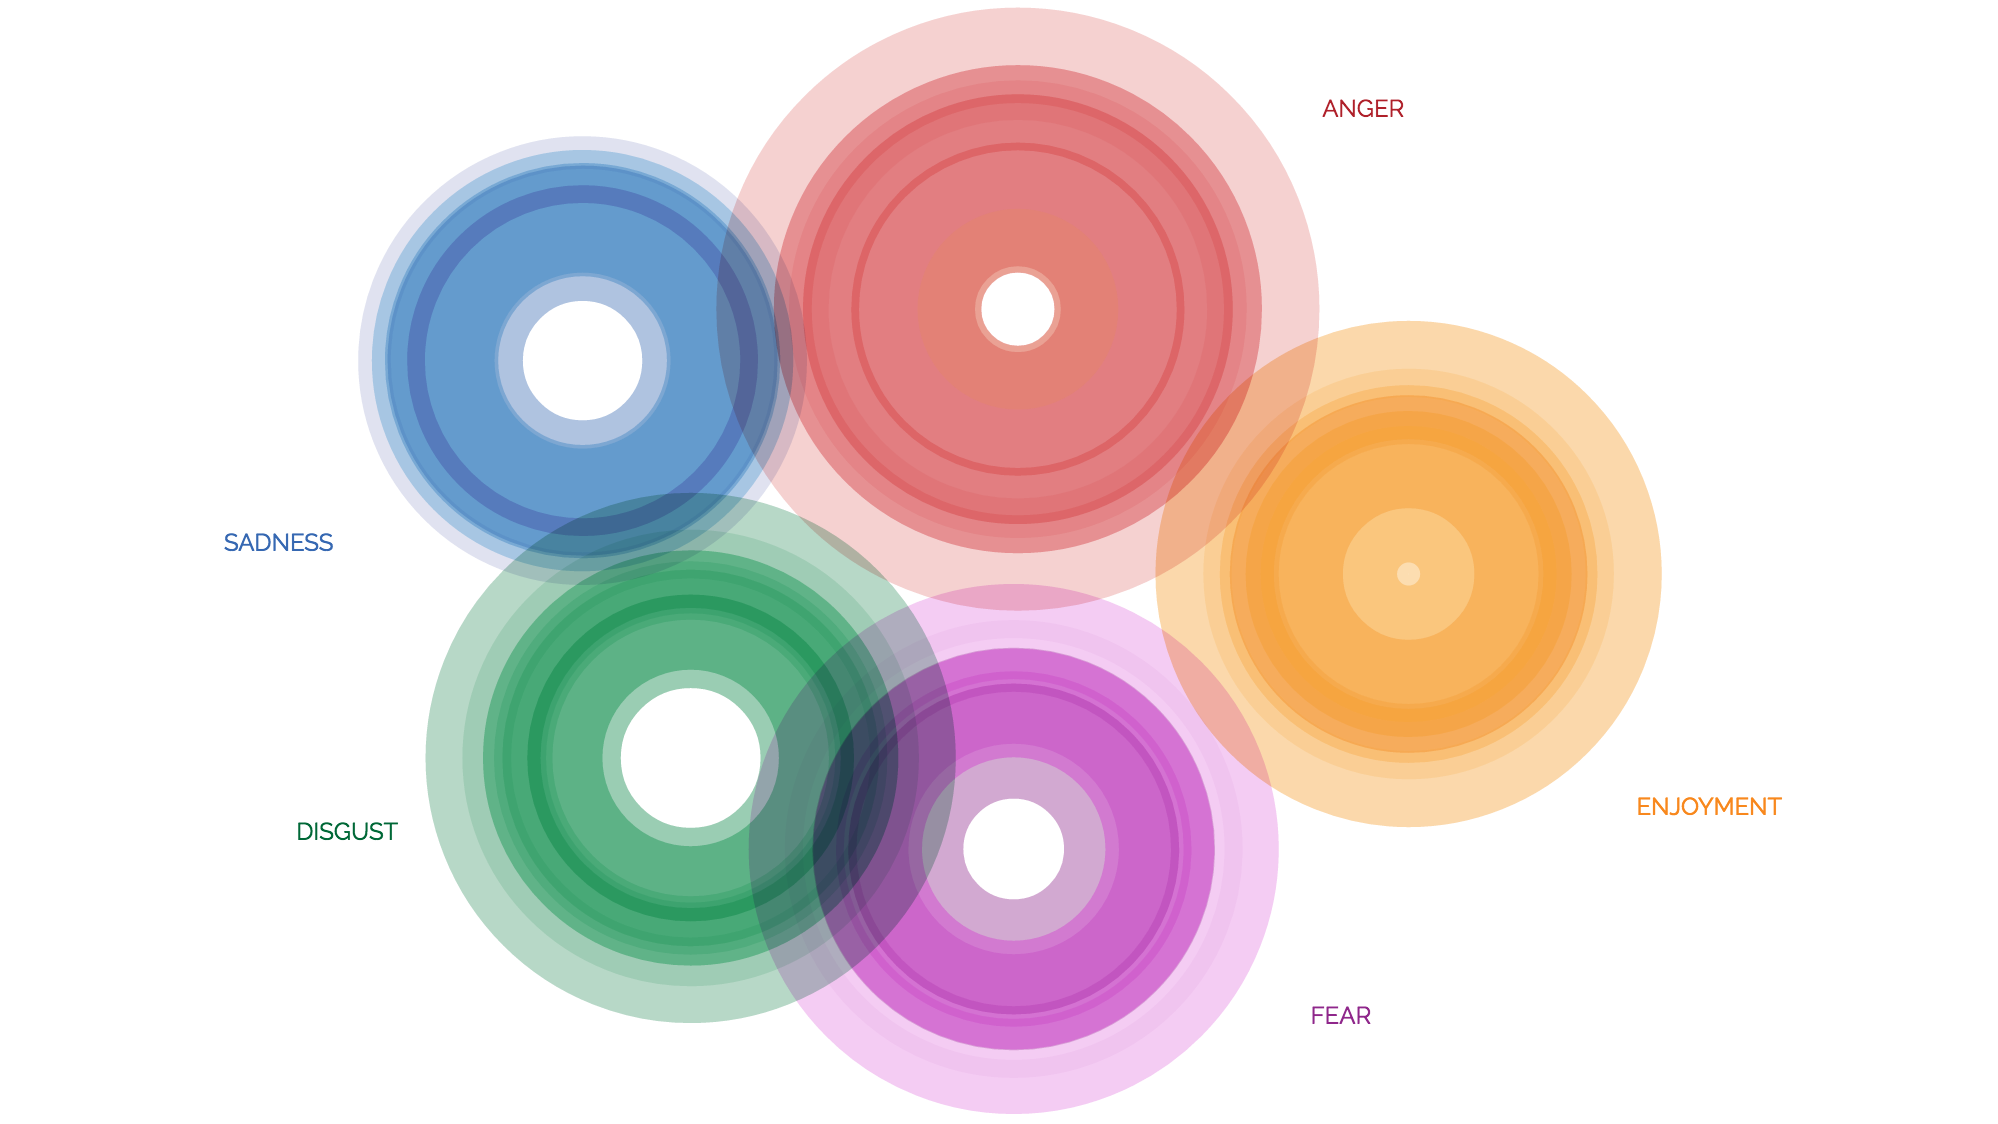 Visualise Your Emotions Based on Psychology and the Dalai Lama's Insight